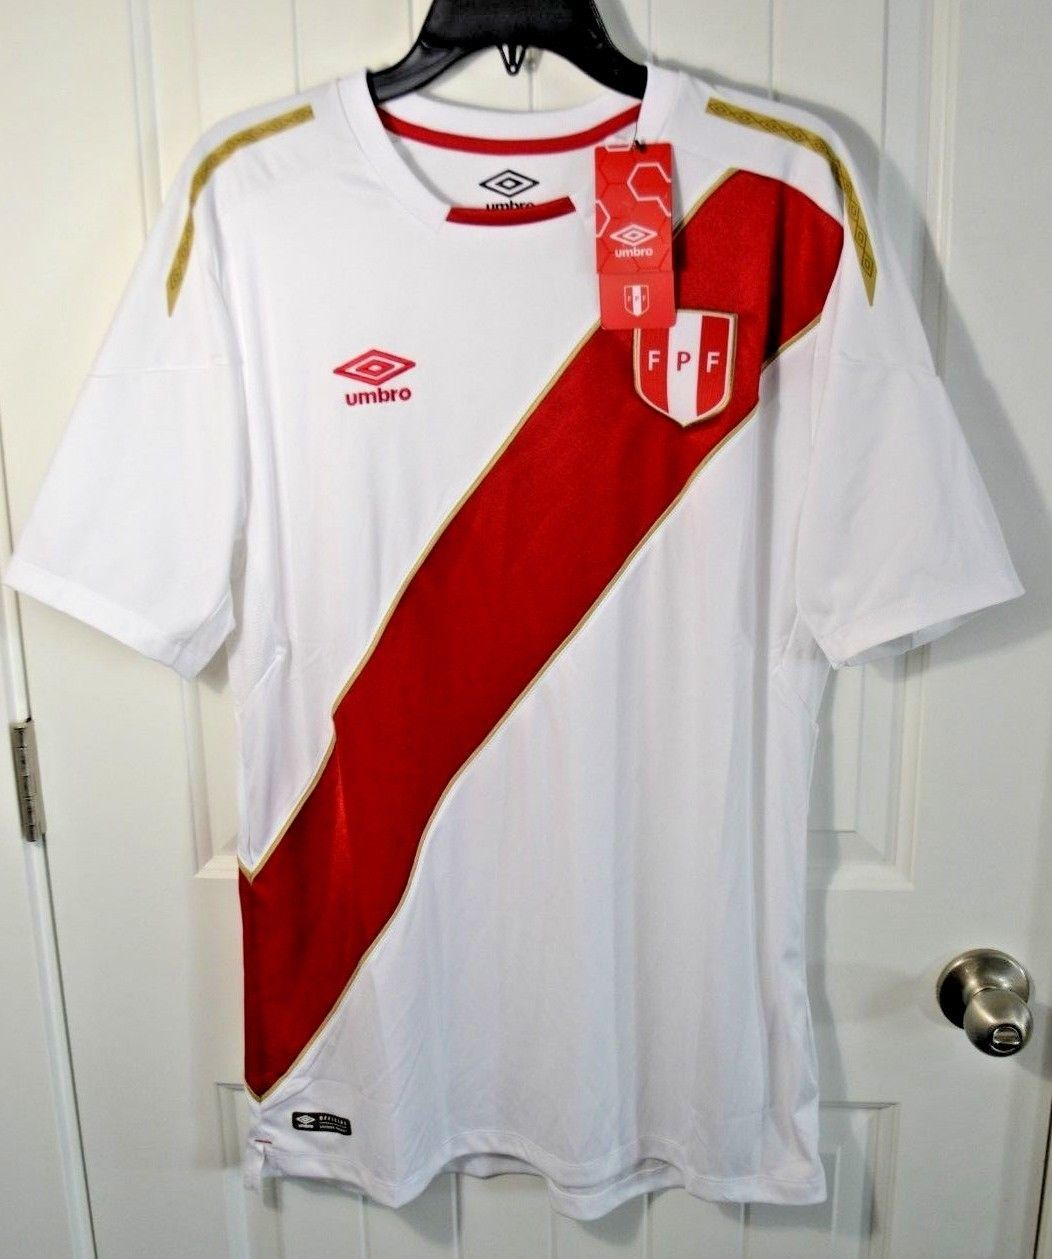 05f0ad270 NWT MENS UMBRO WHITE RED PERU HOME JERSEY RUSSIA WORLD CUP 2018 T SHIRT SZ